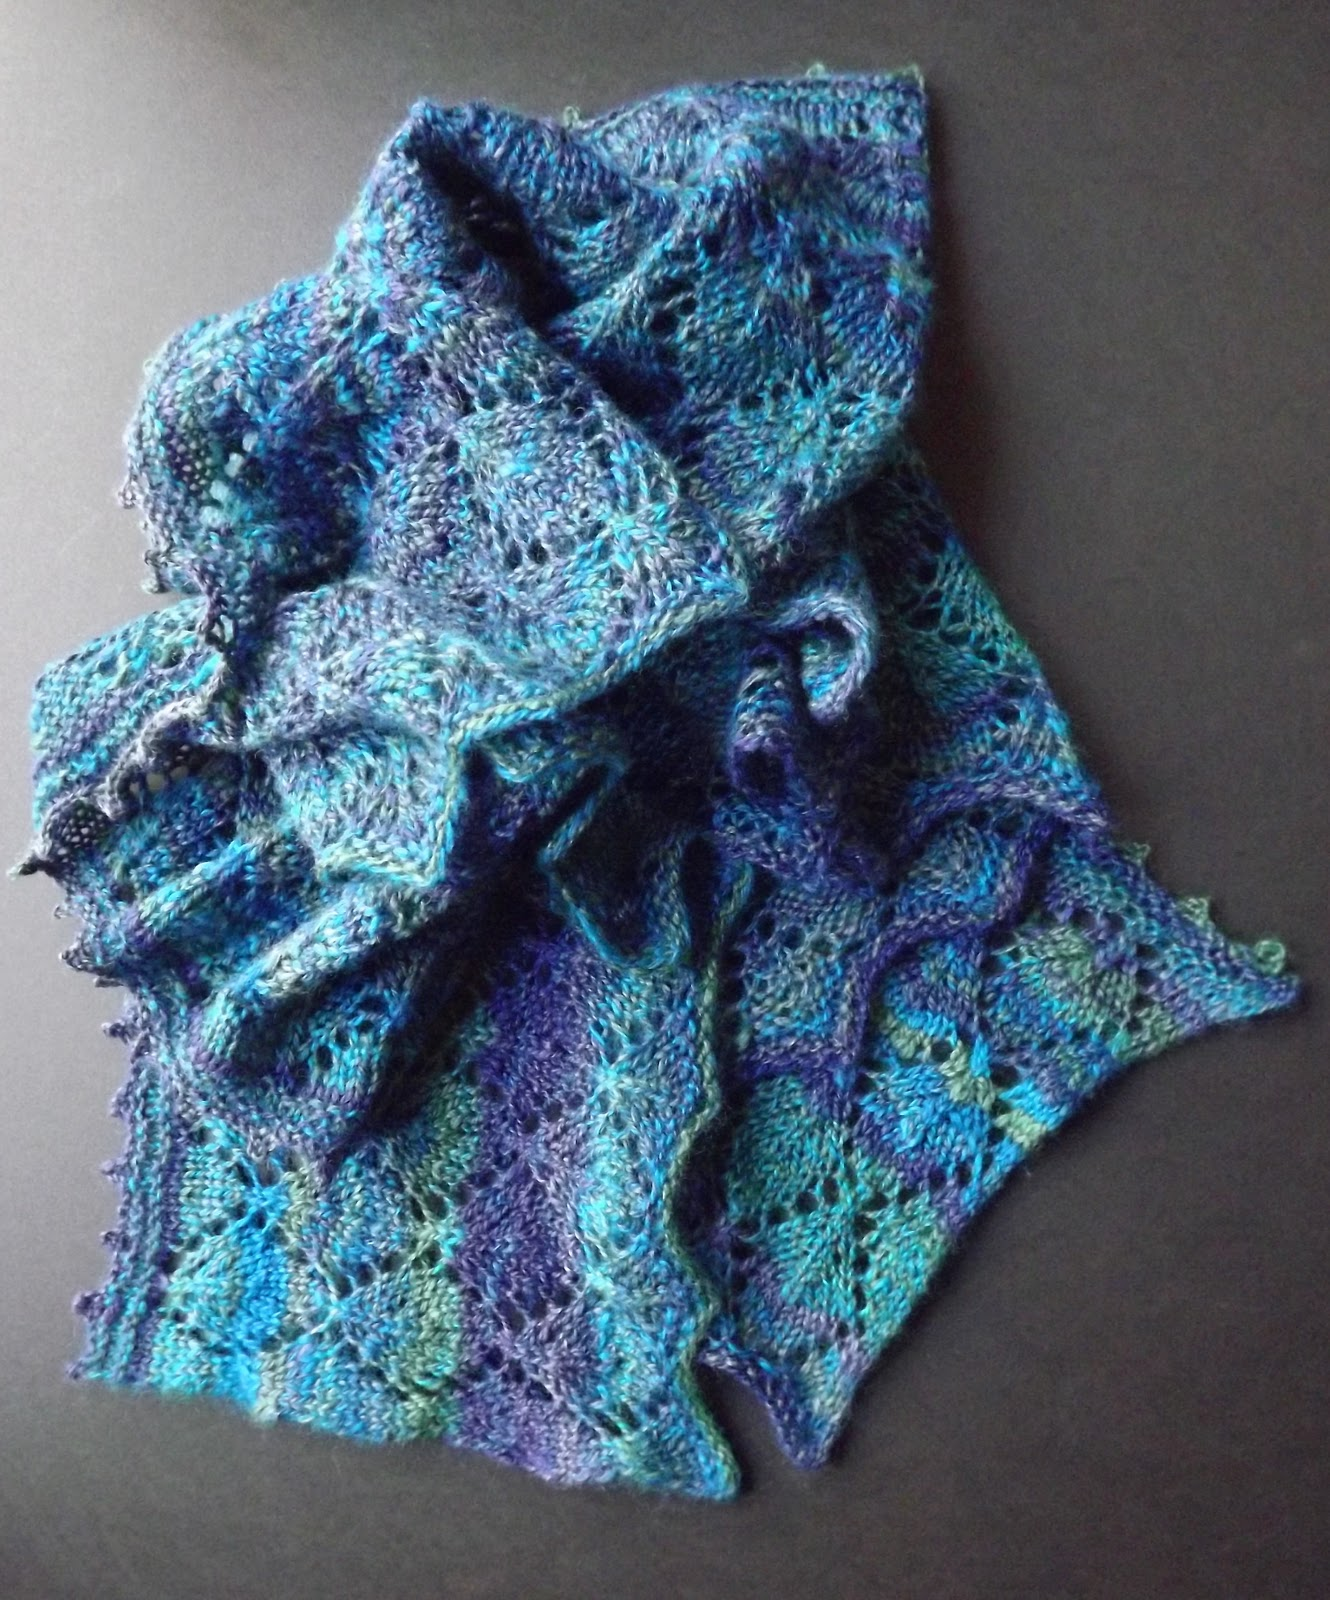 Knit Lace Stitch Scarf : Olives and Mermaids and Wine, oh my...: Lace Knit Lengthwise Scarf